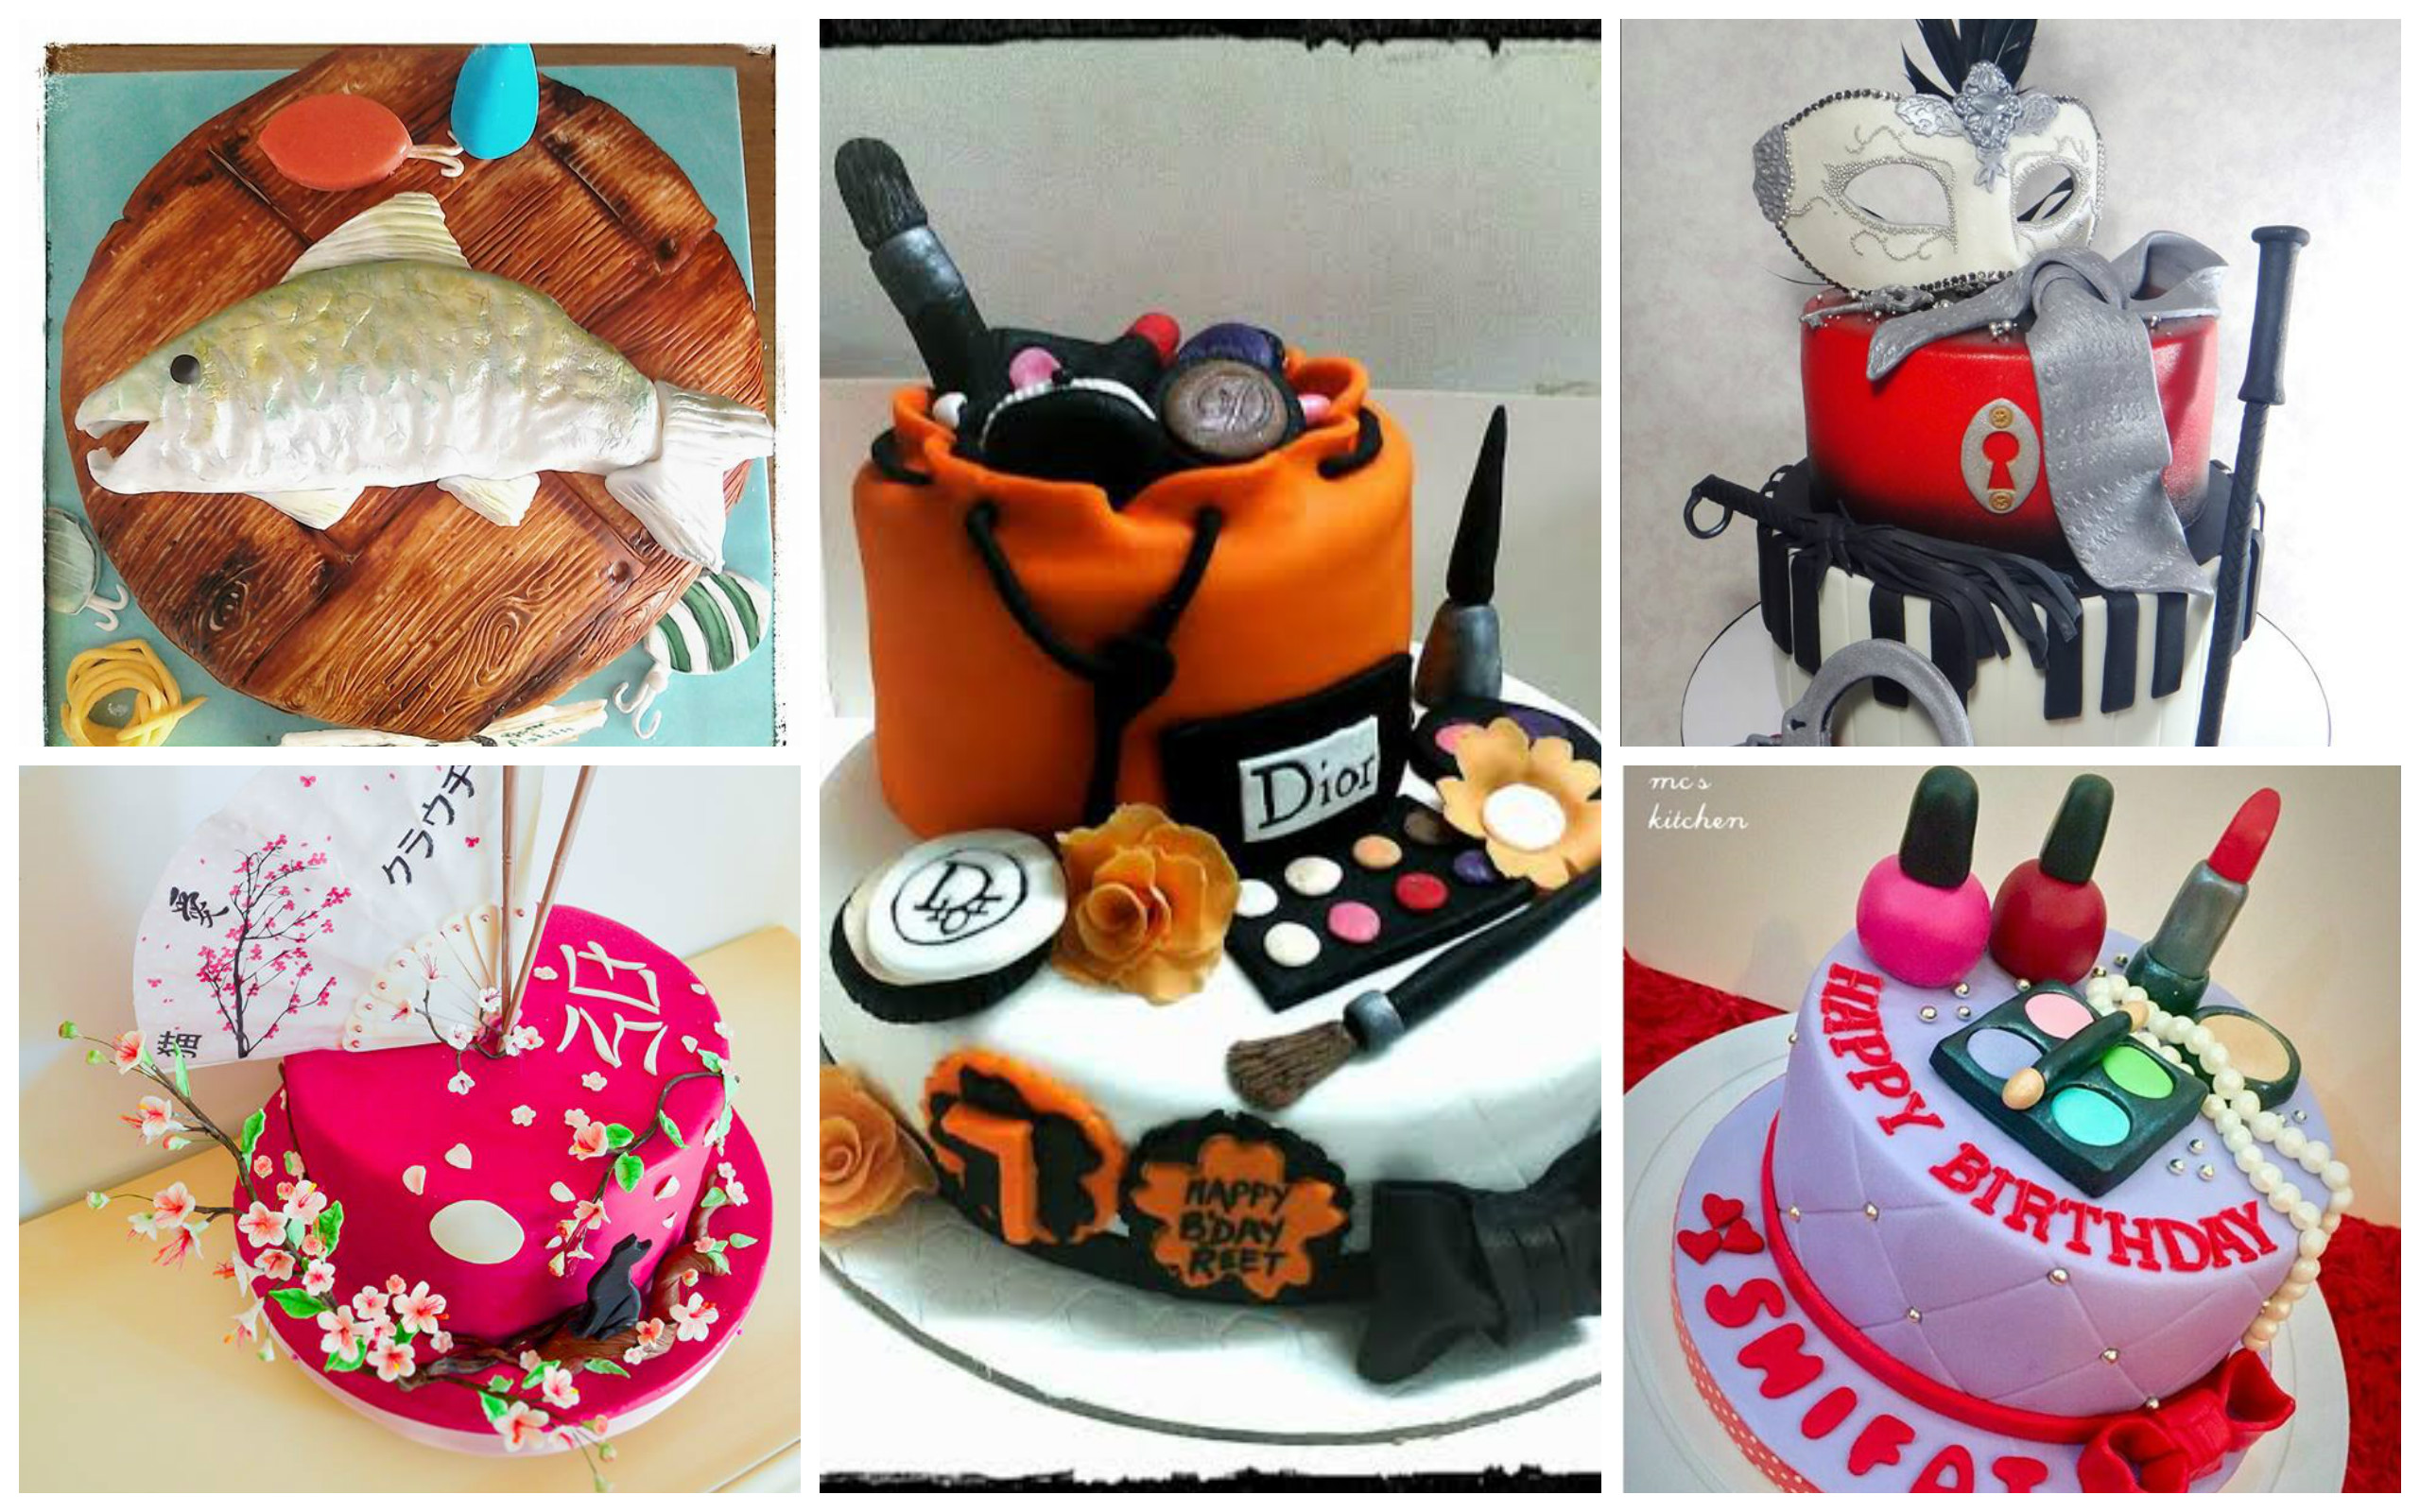 Super Creative Cakes From The Greatest Cake Artists In the ...